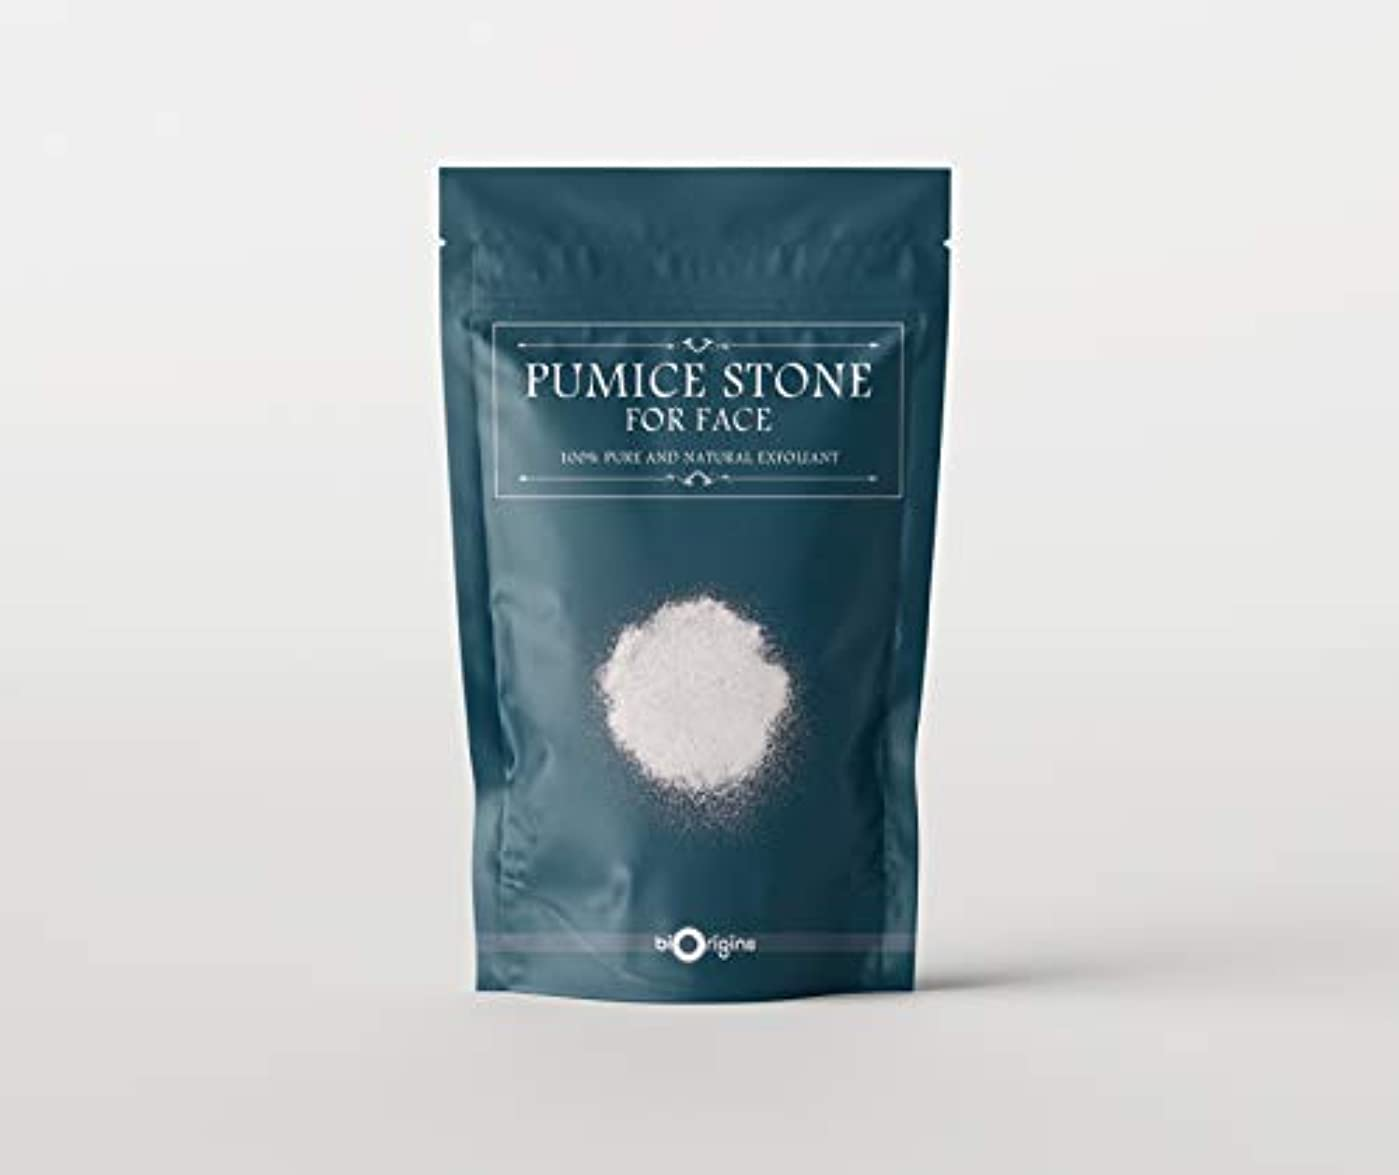 男性無許可の間でPumice Stone Superfine For Face Exfoliant 1Kg